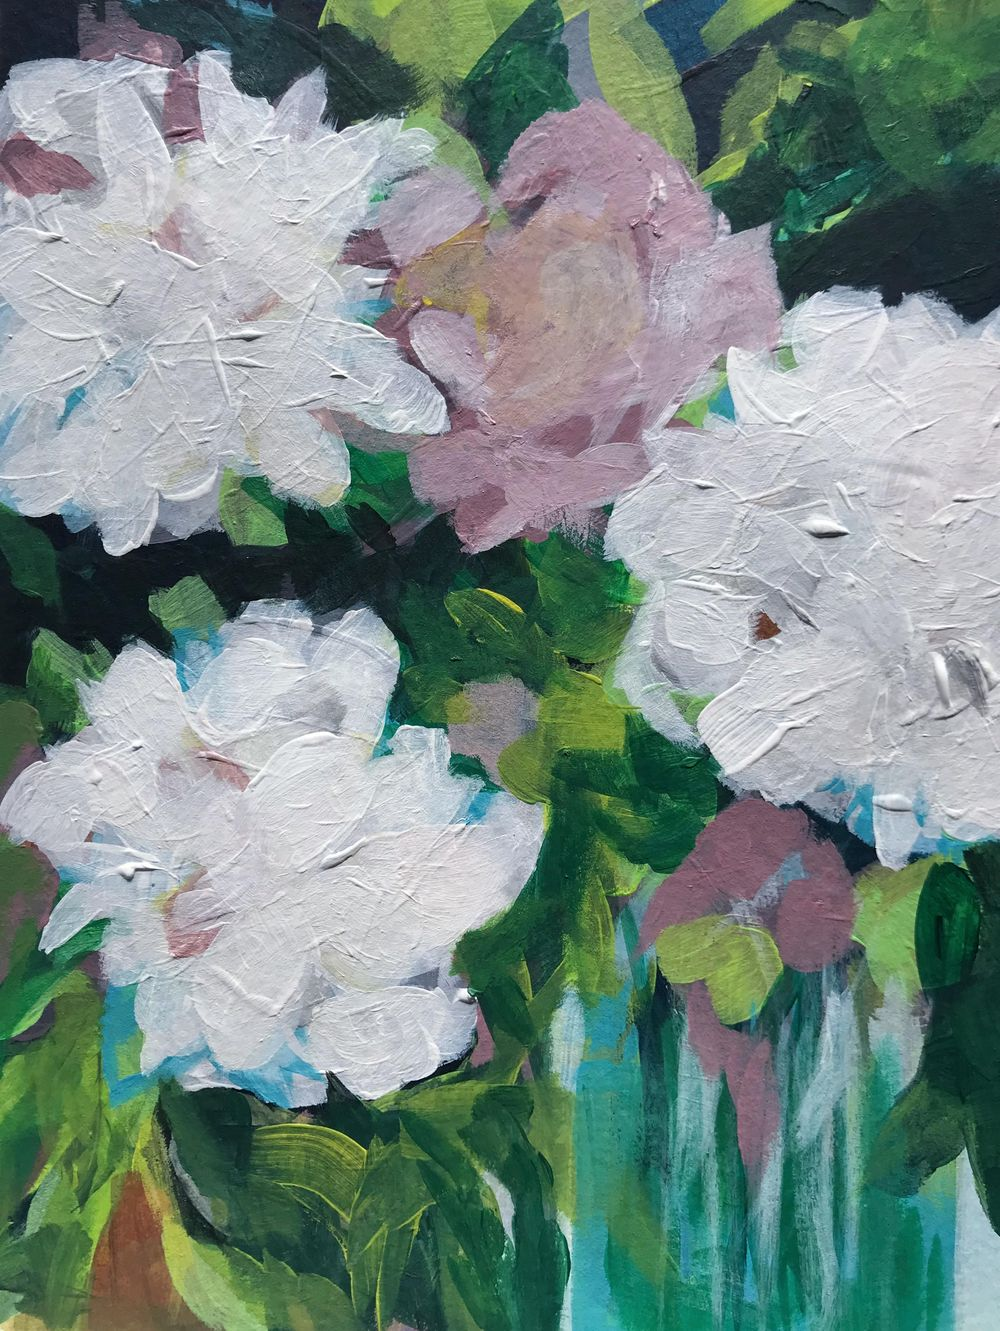 White Peonies - image 1 - student project